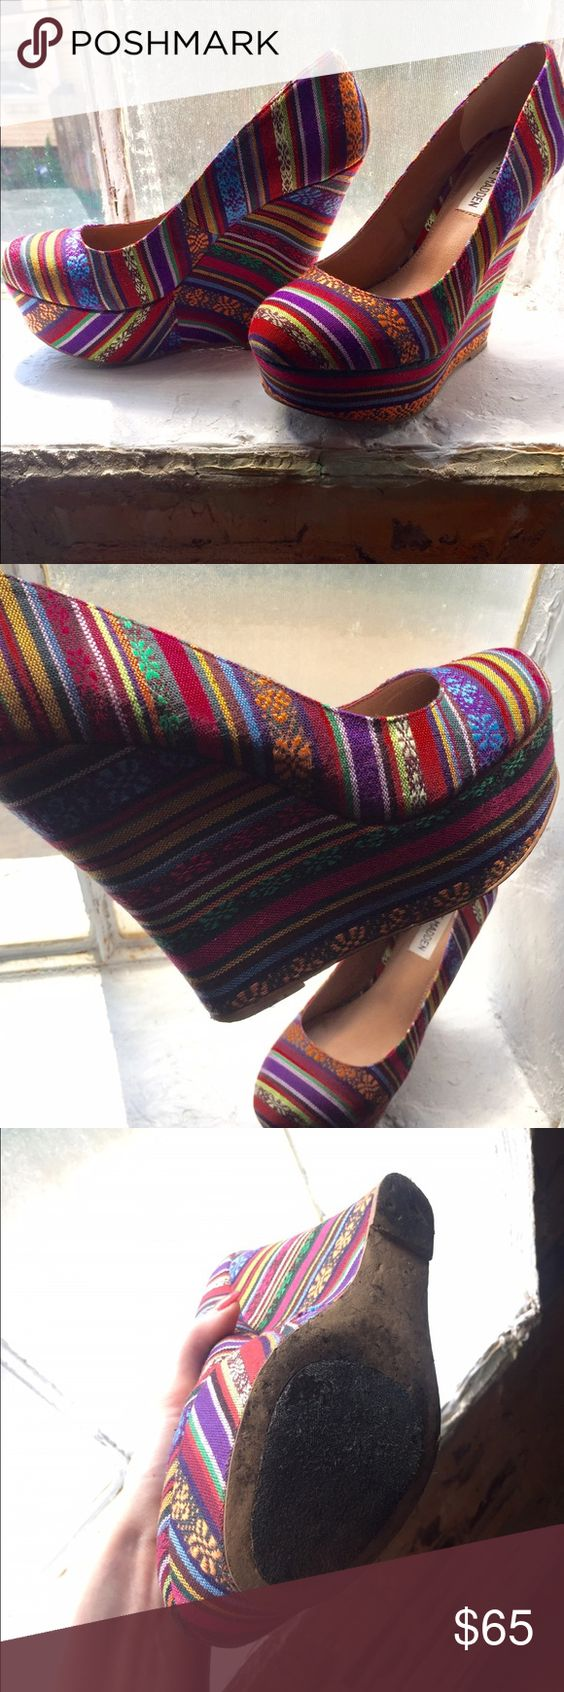 """Steve Madden Aztec print wedge Steve Madden multi-colored Aztec print wedge, approx 4"""" heel, size 8.5, worn once at a wedding, wear & tear on the sole only. Excellent condition. Without original box. (Lower price on Ⓜ️ercari) Steve Madden Shoes Wedges"""